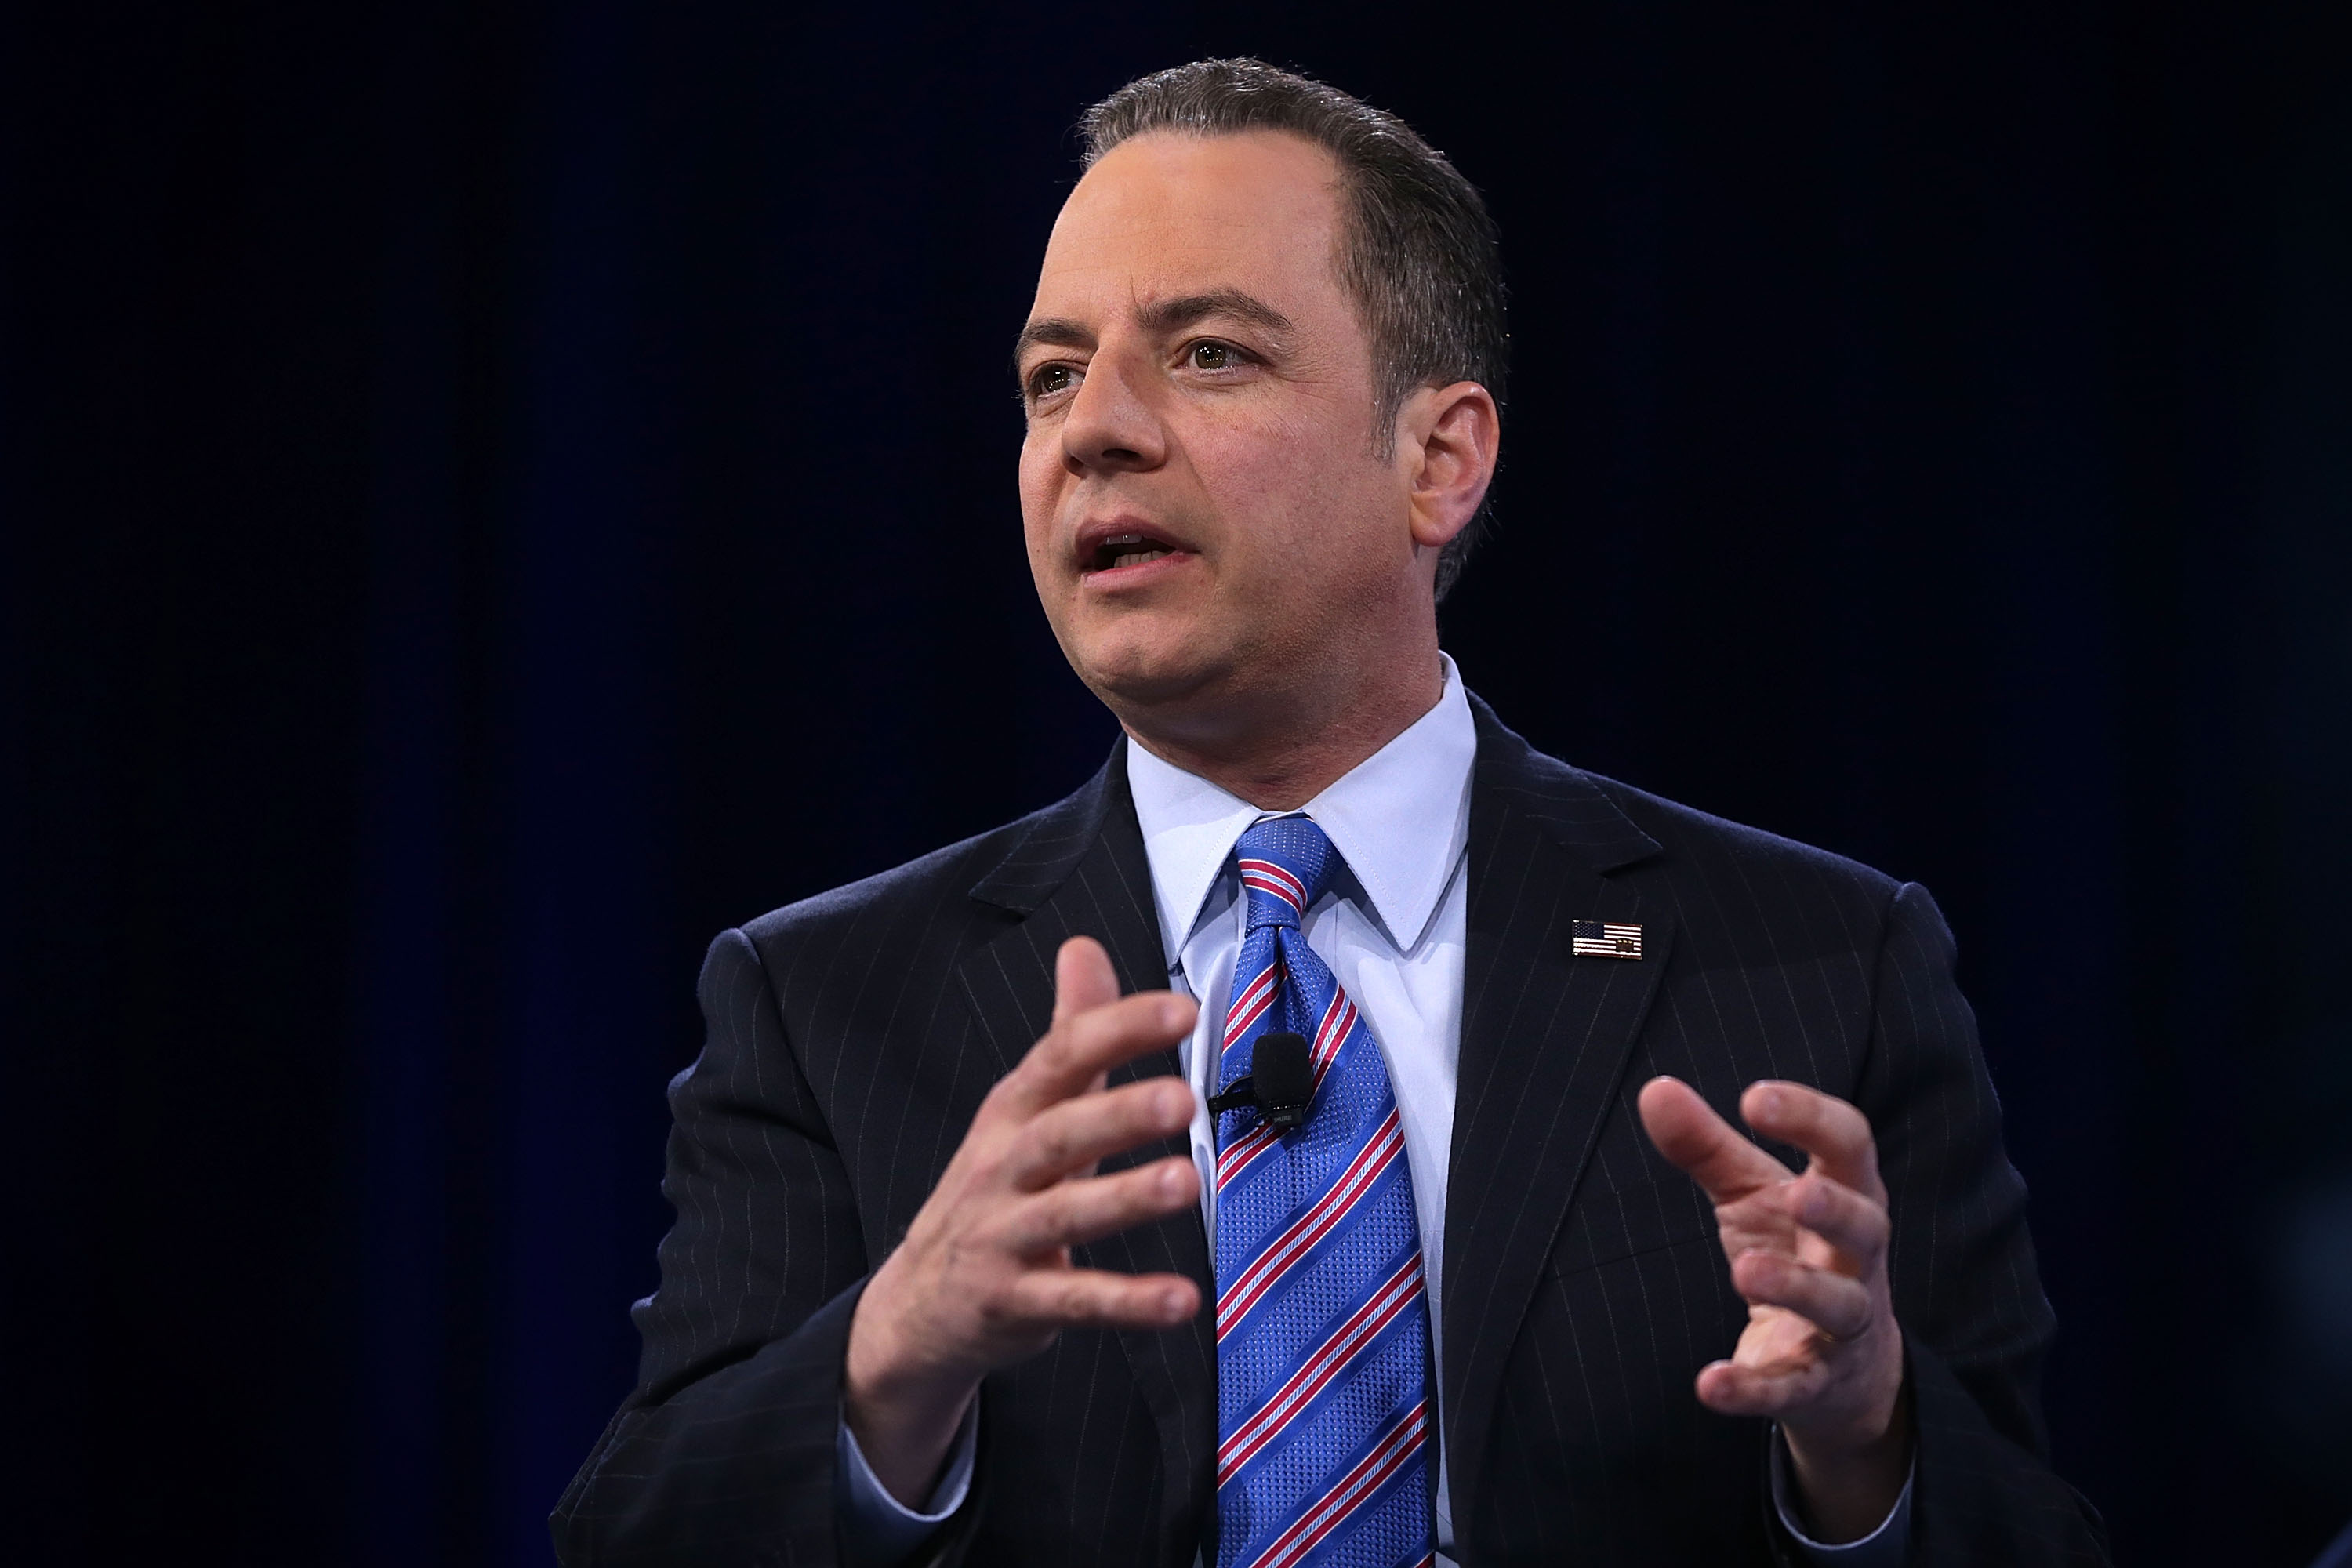 Chairman of the Republican National Committee Reince Priebus on March 4, 2016 in National Harbor, Md.